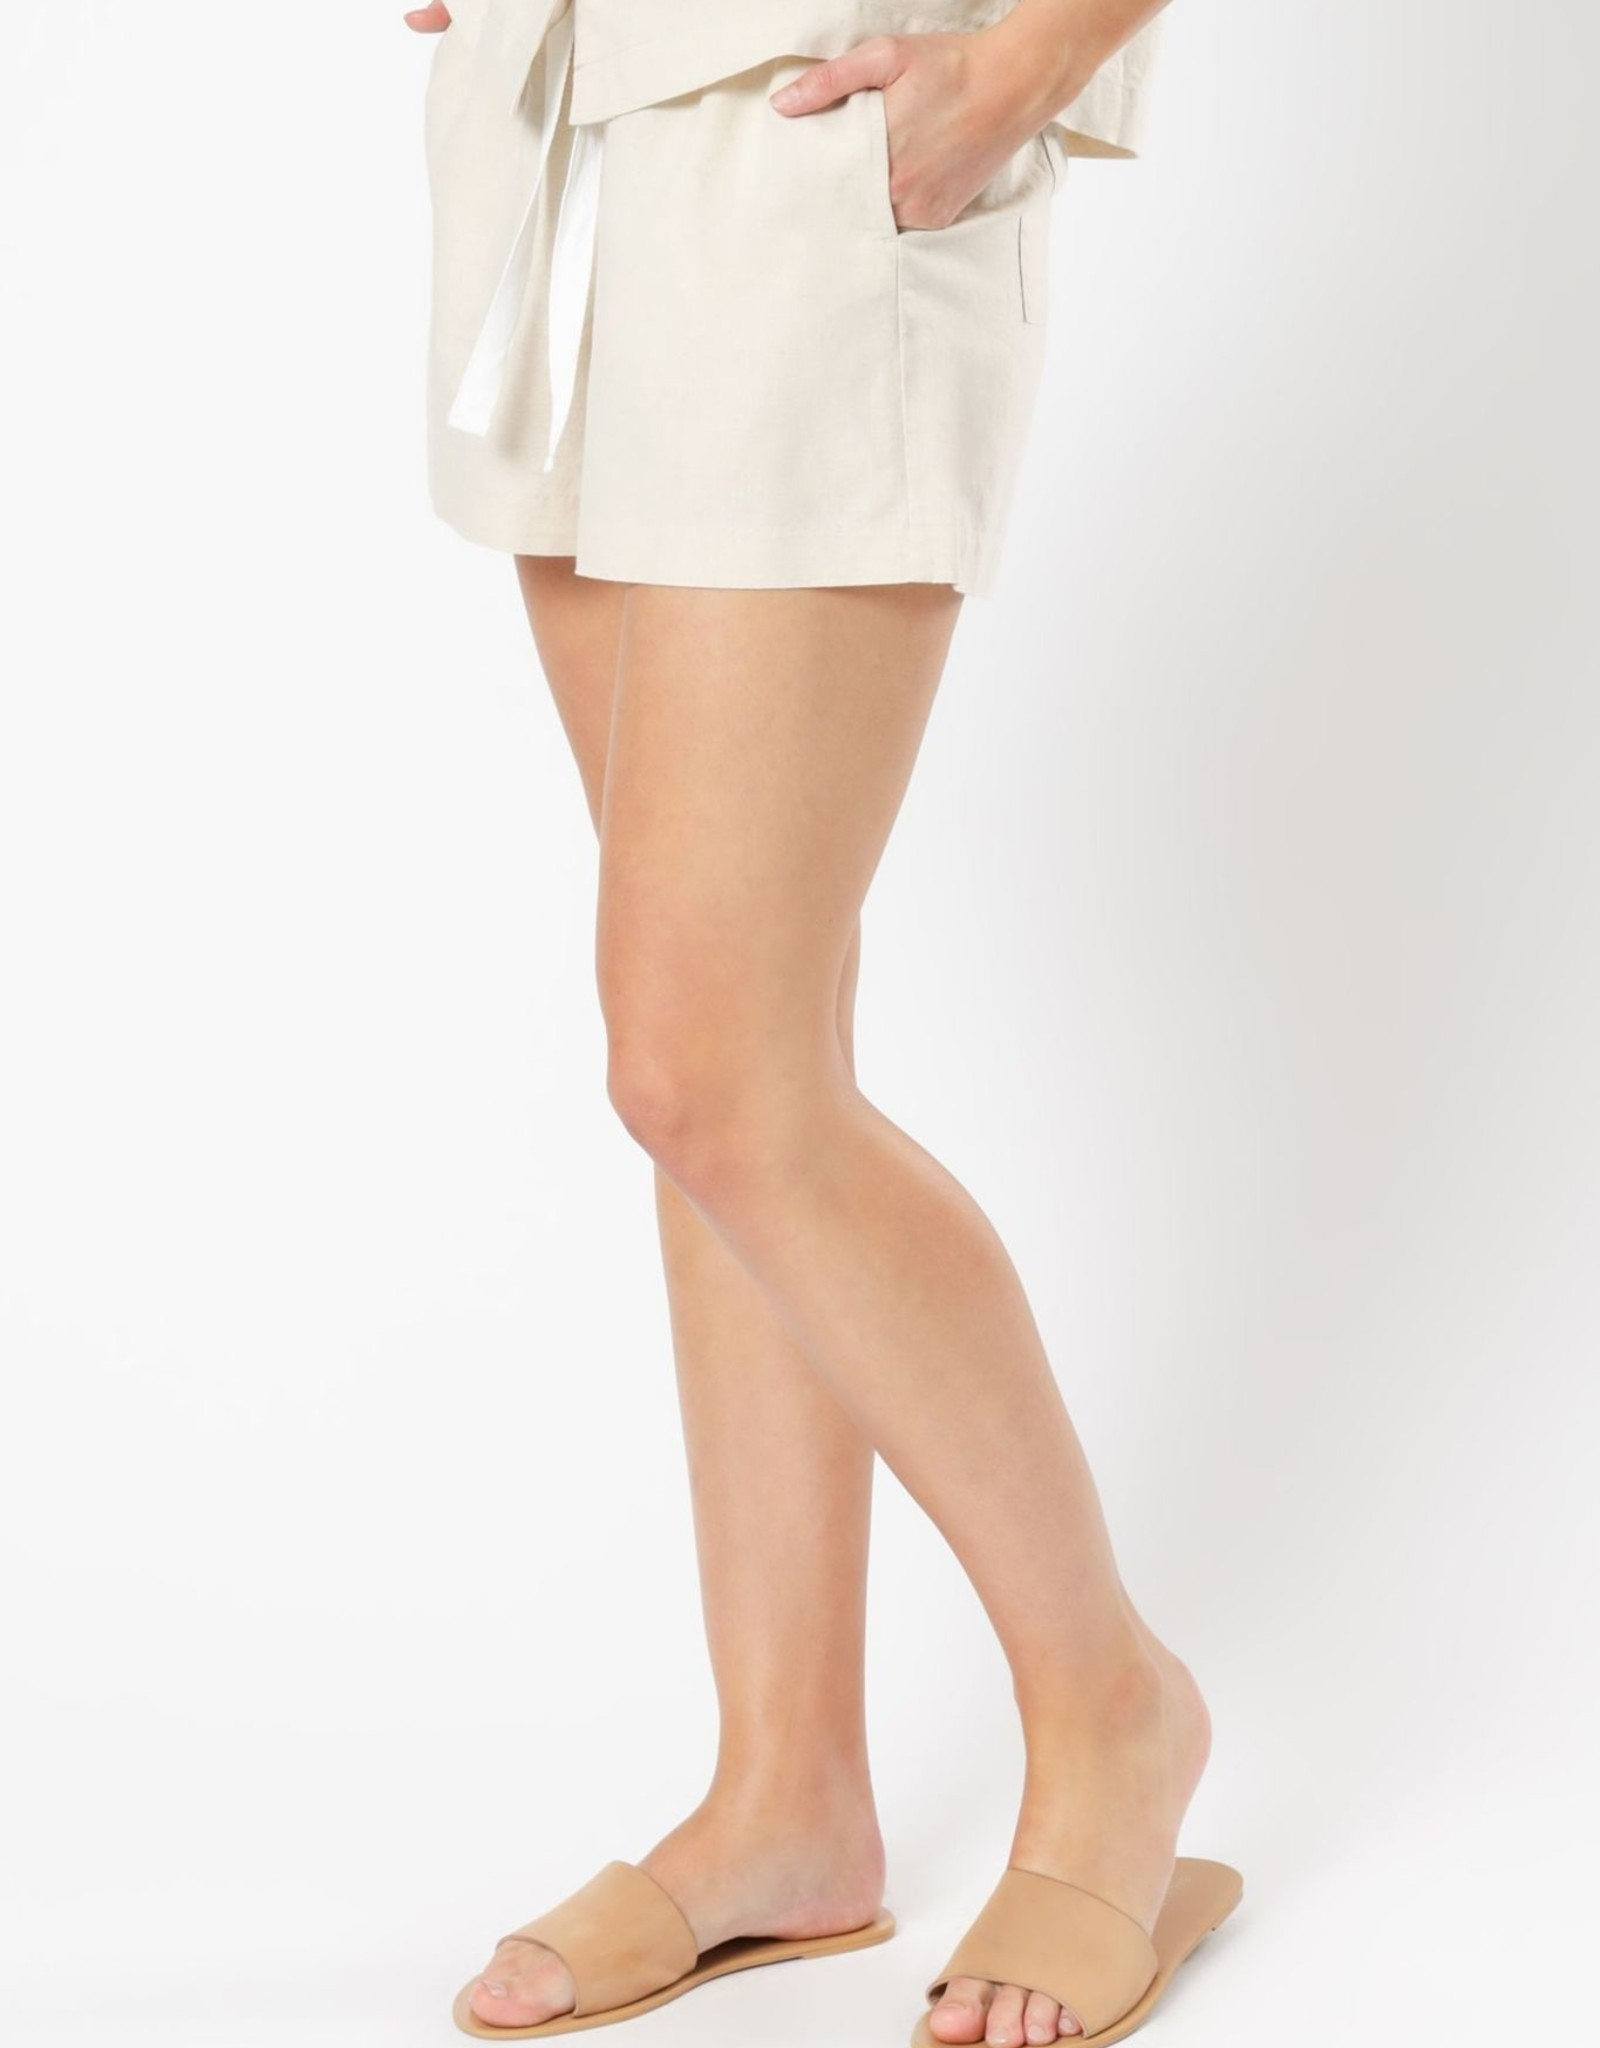 NUDE LUCY Nude Classic Short